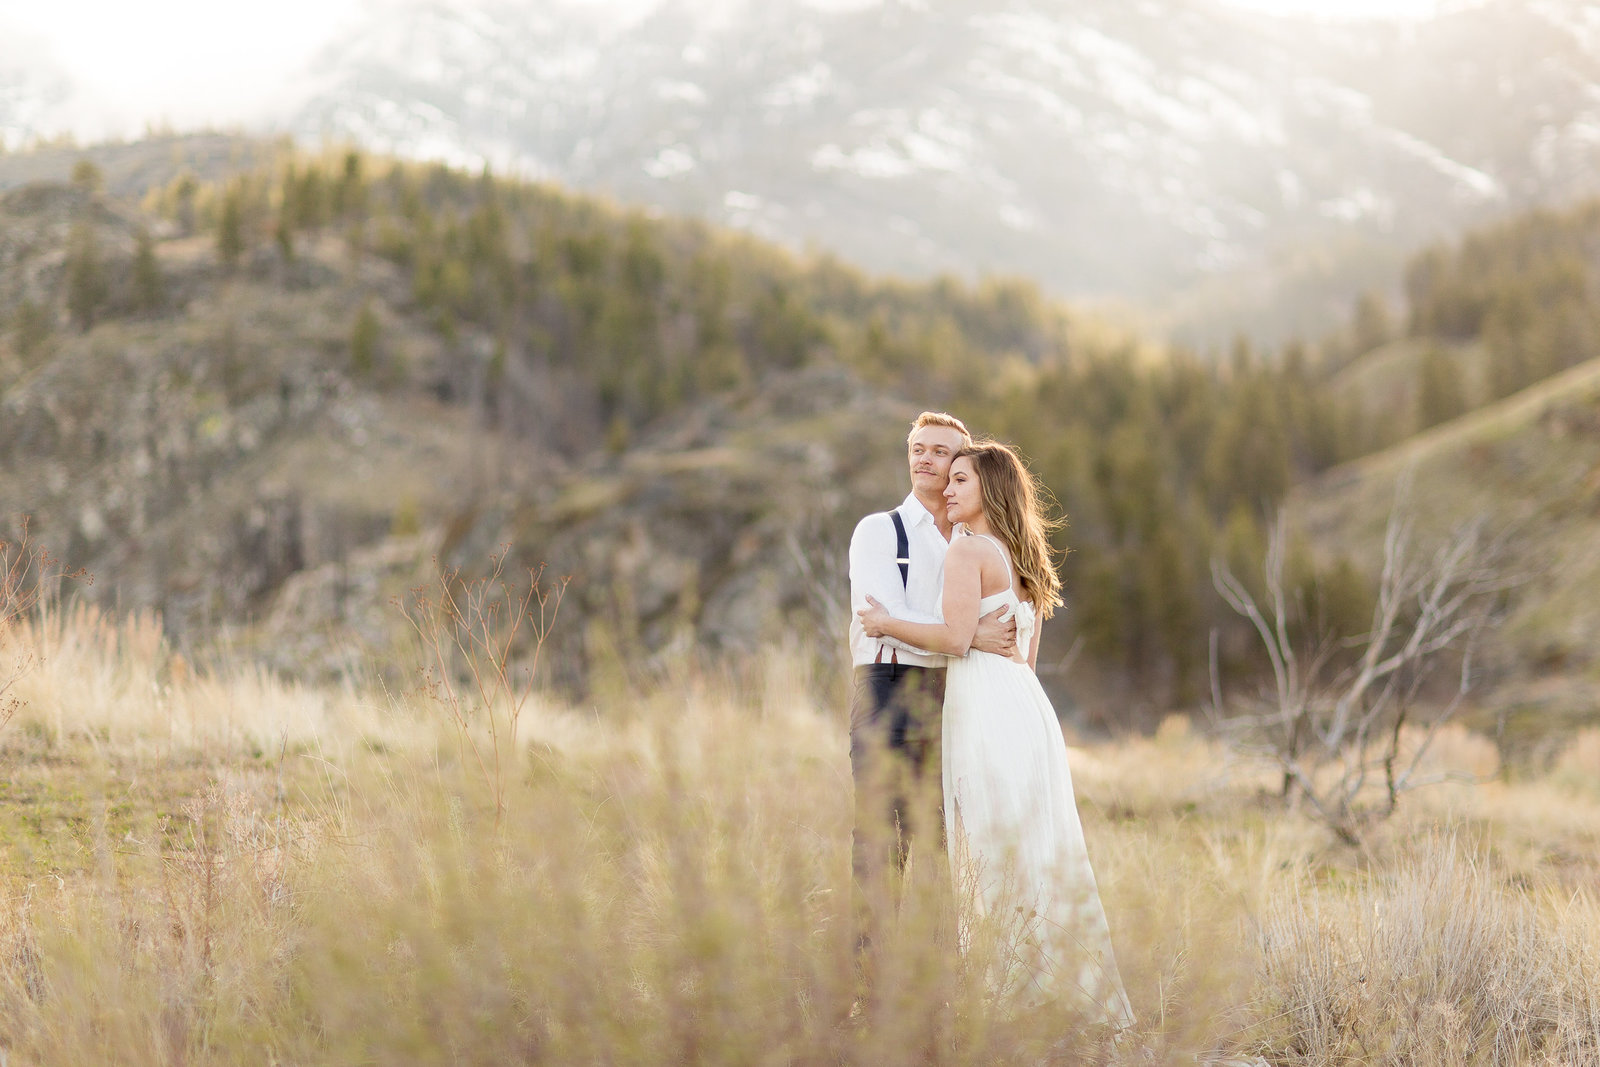 Henry & Kyrie | Previews | Emily Moller Photography (2 of 6)